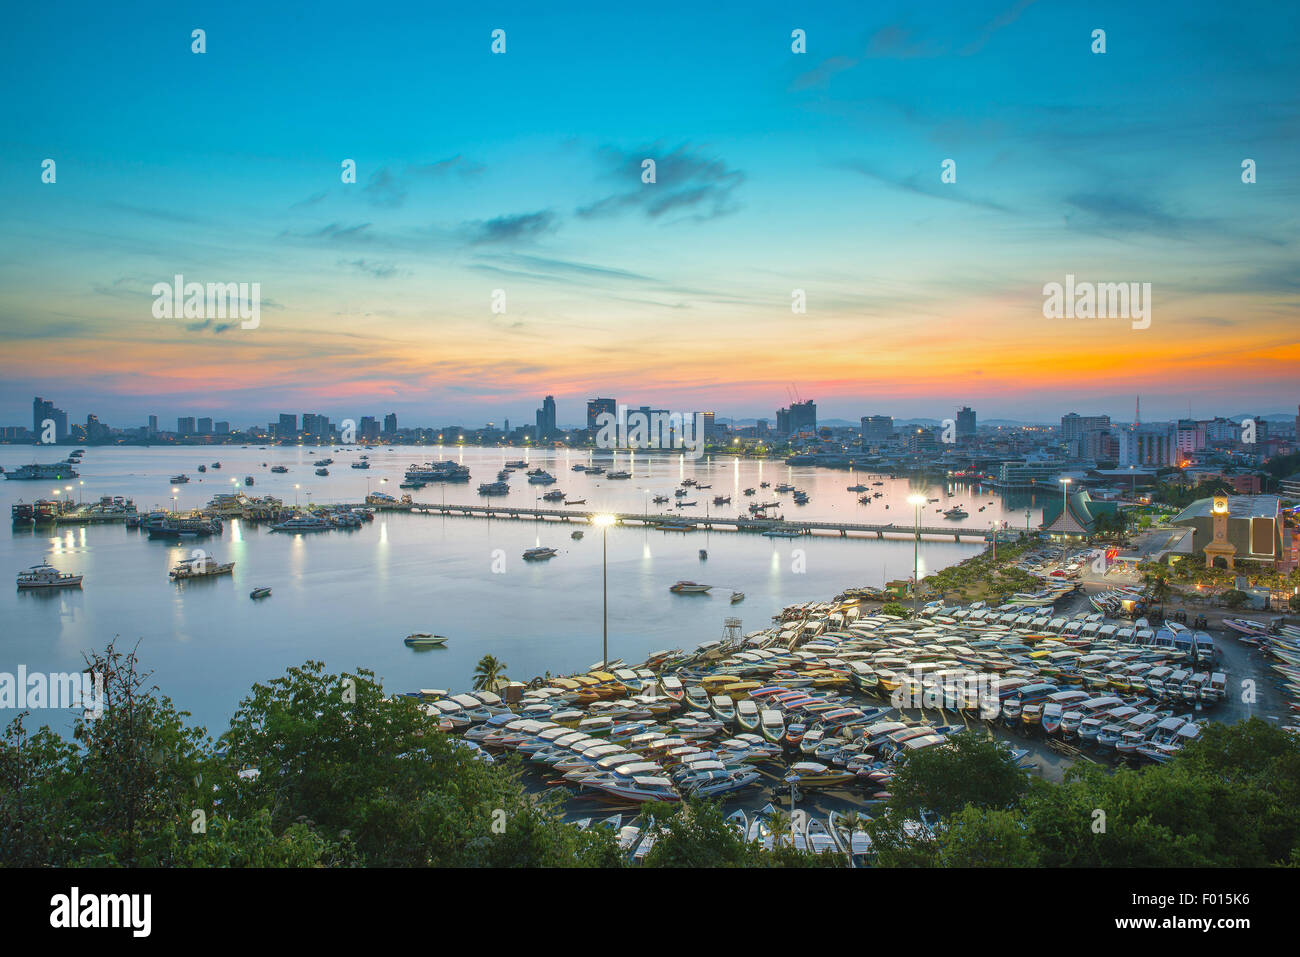 Pattaya City and Sea in Twilight, Thailand - Stock Image